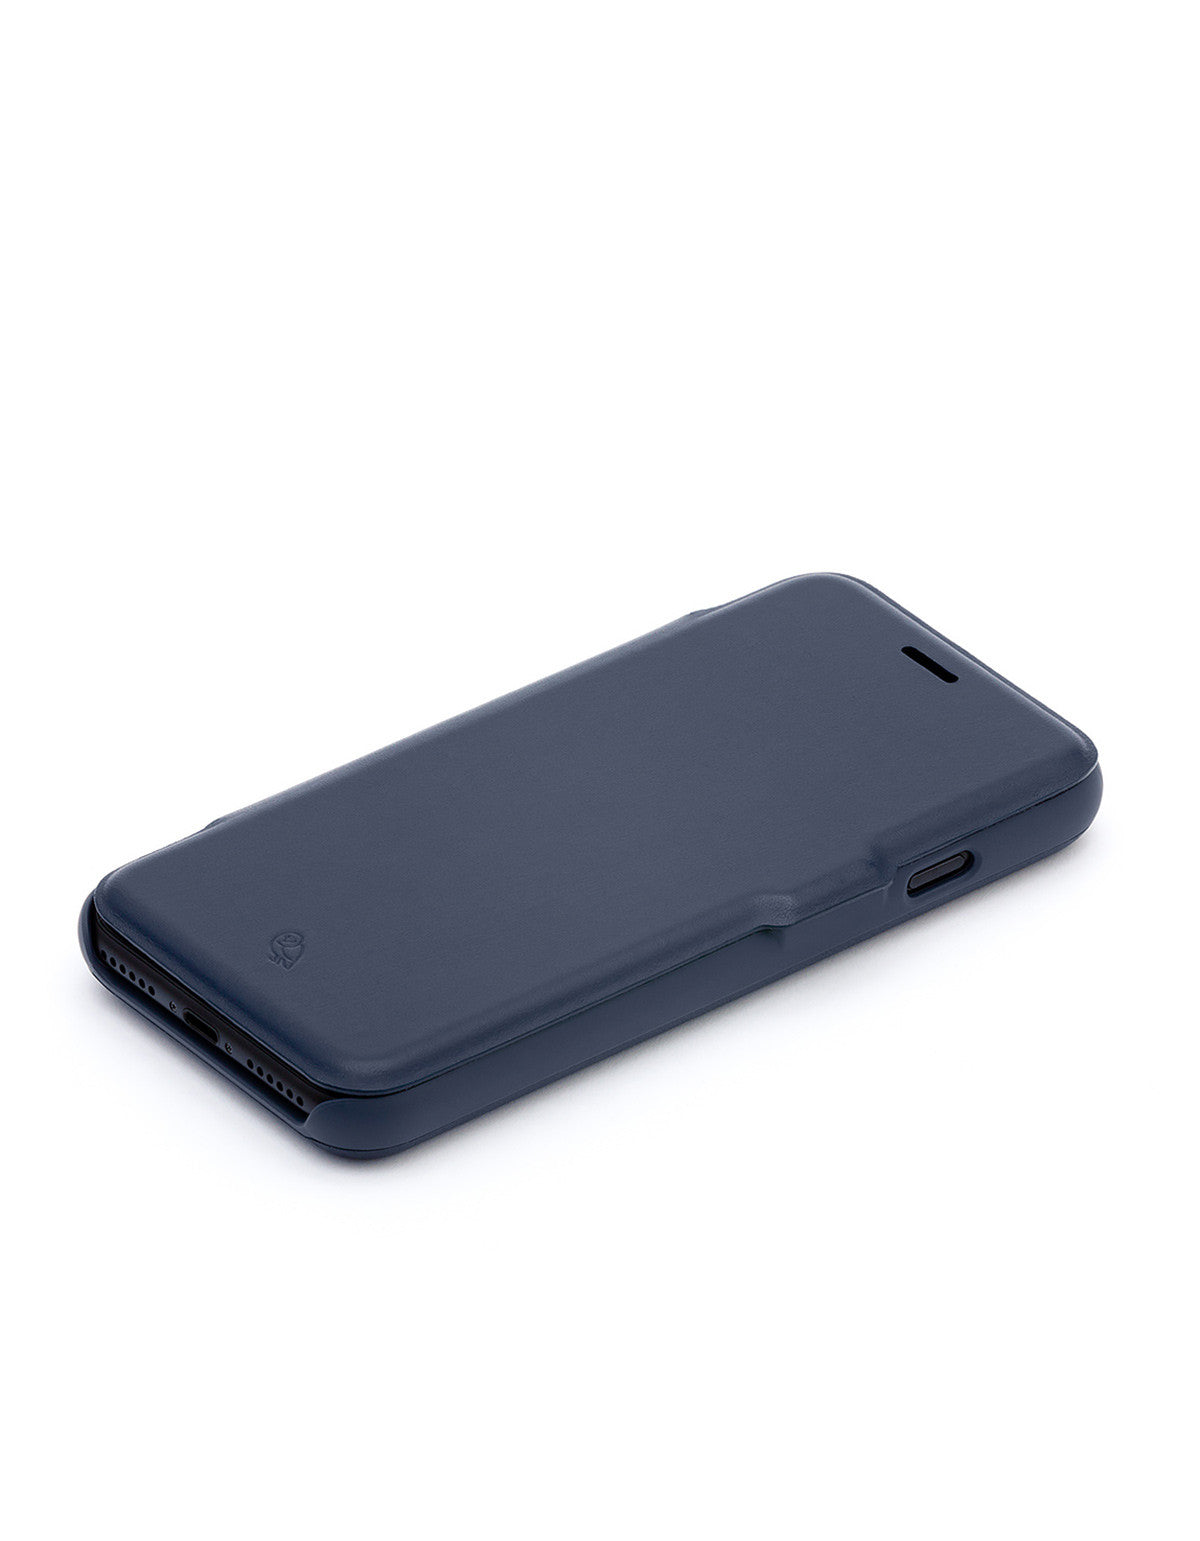 Bellroy Phone Wallet i7 Blue Steel - Still Life - 1